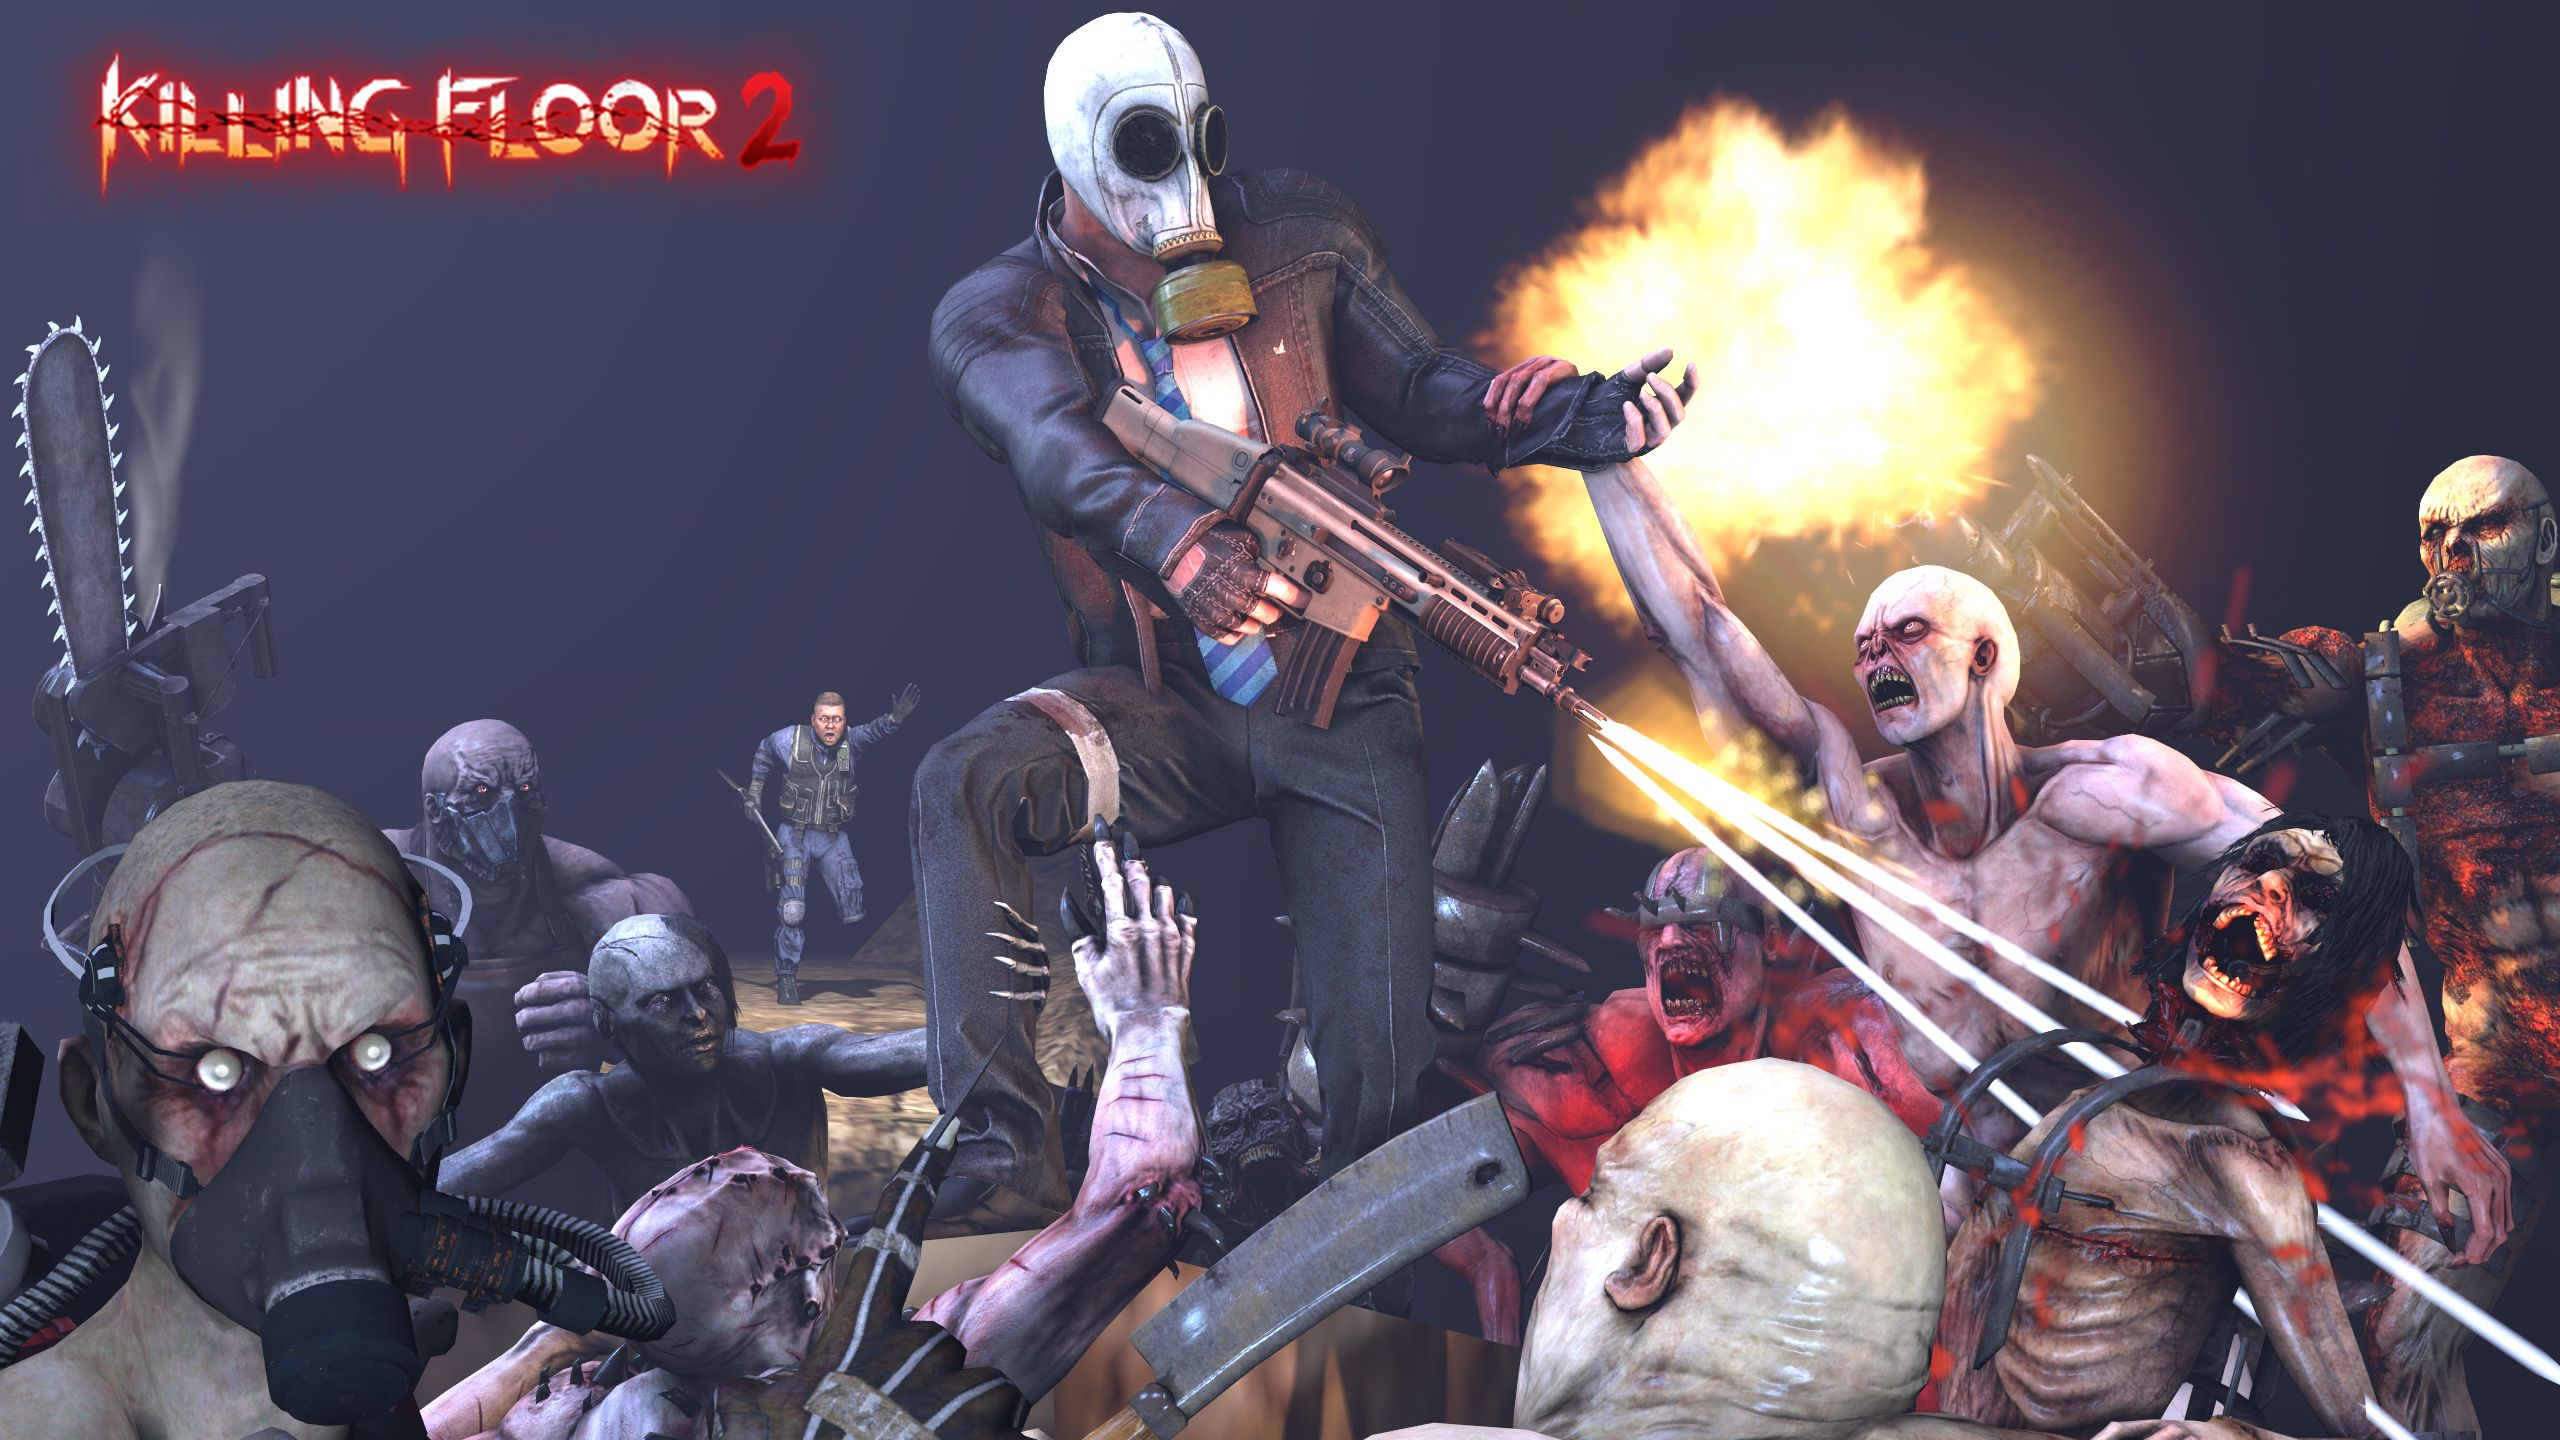 Pin On Killing Floor 2 Game